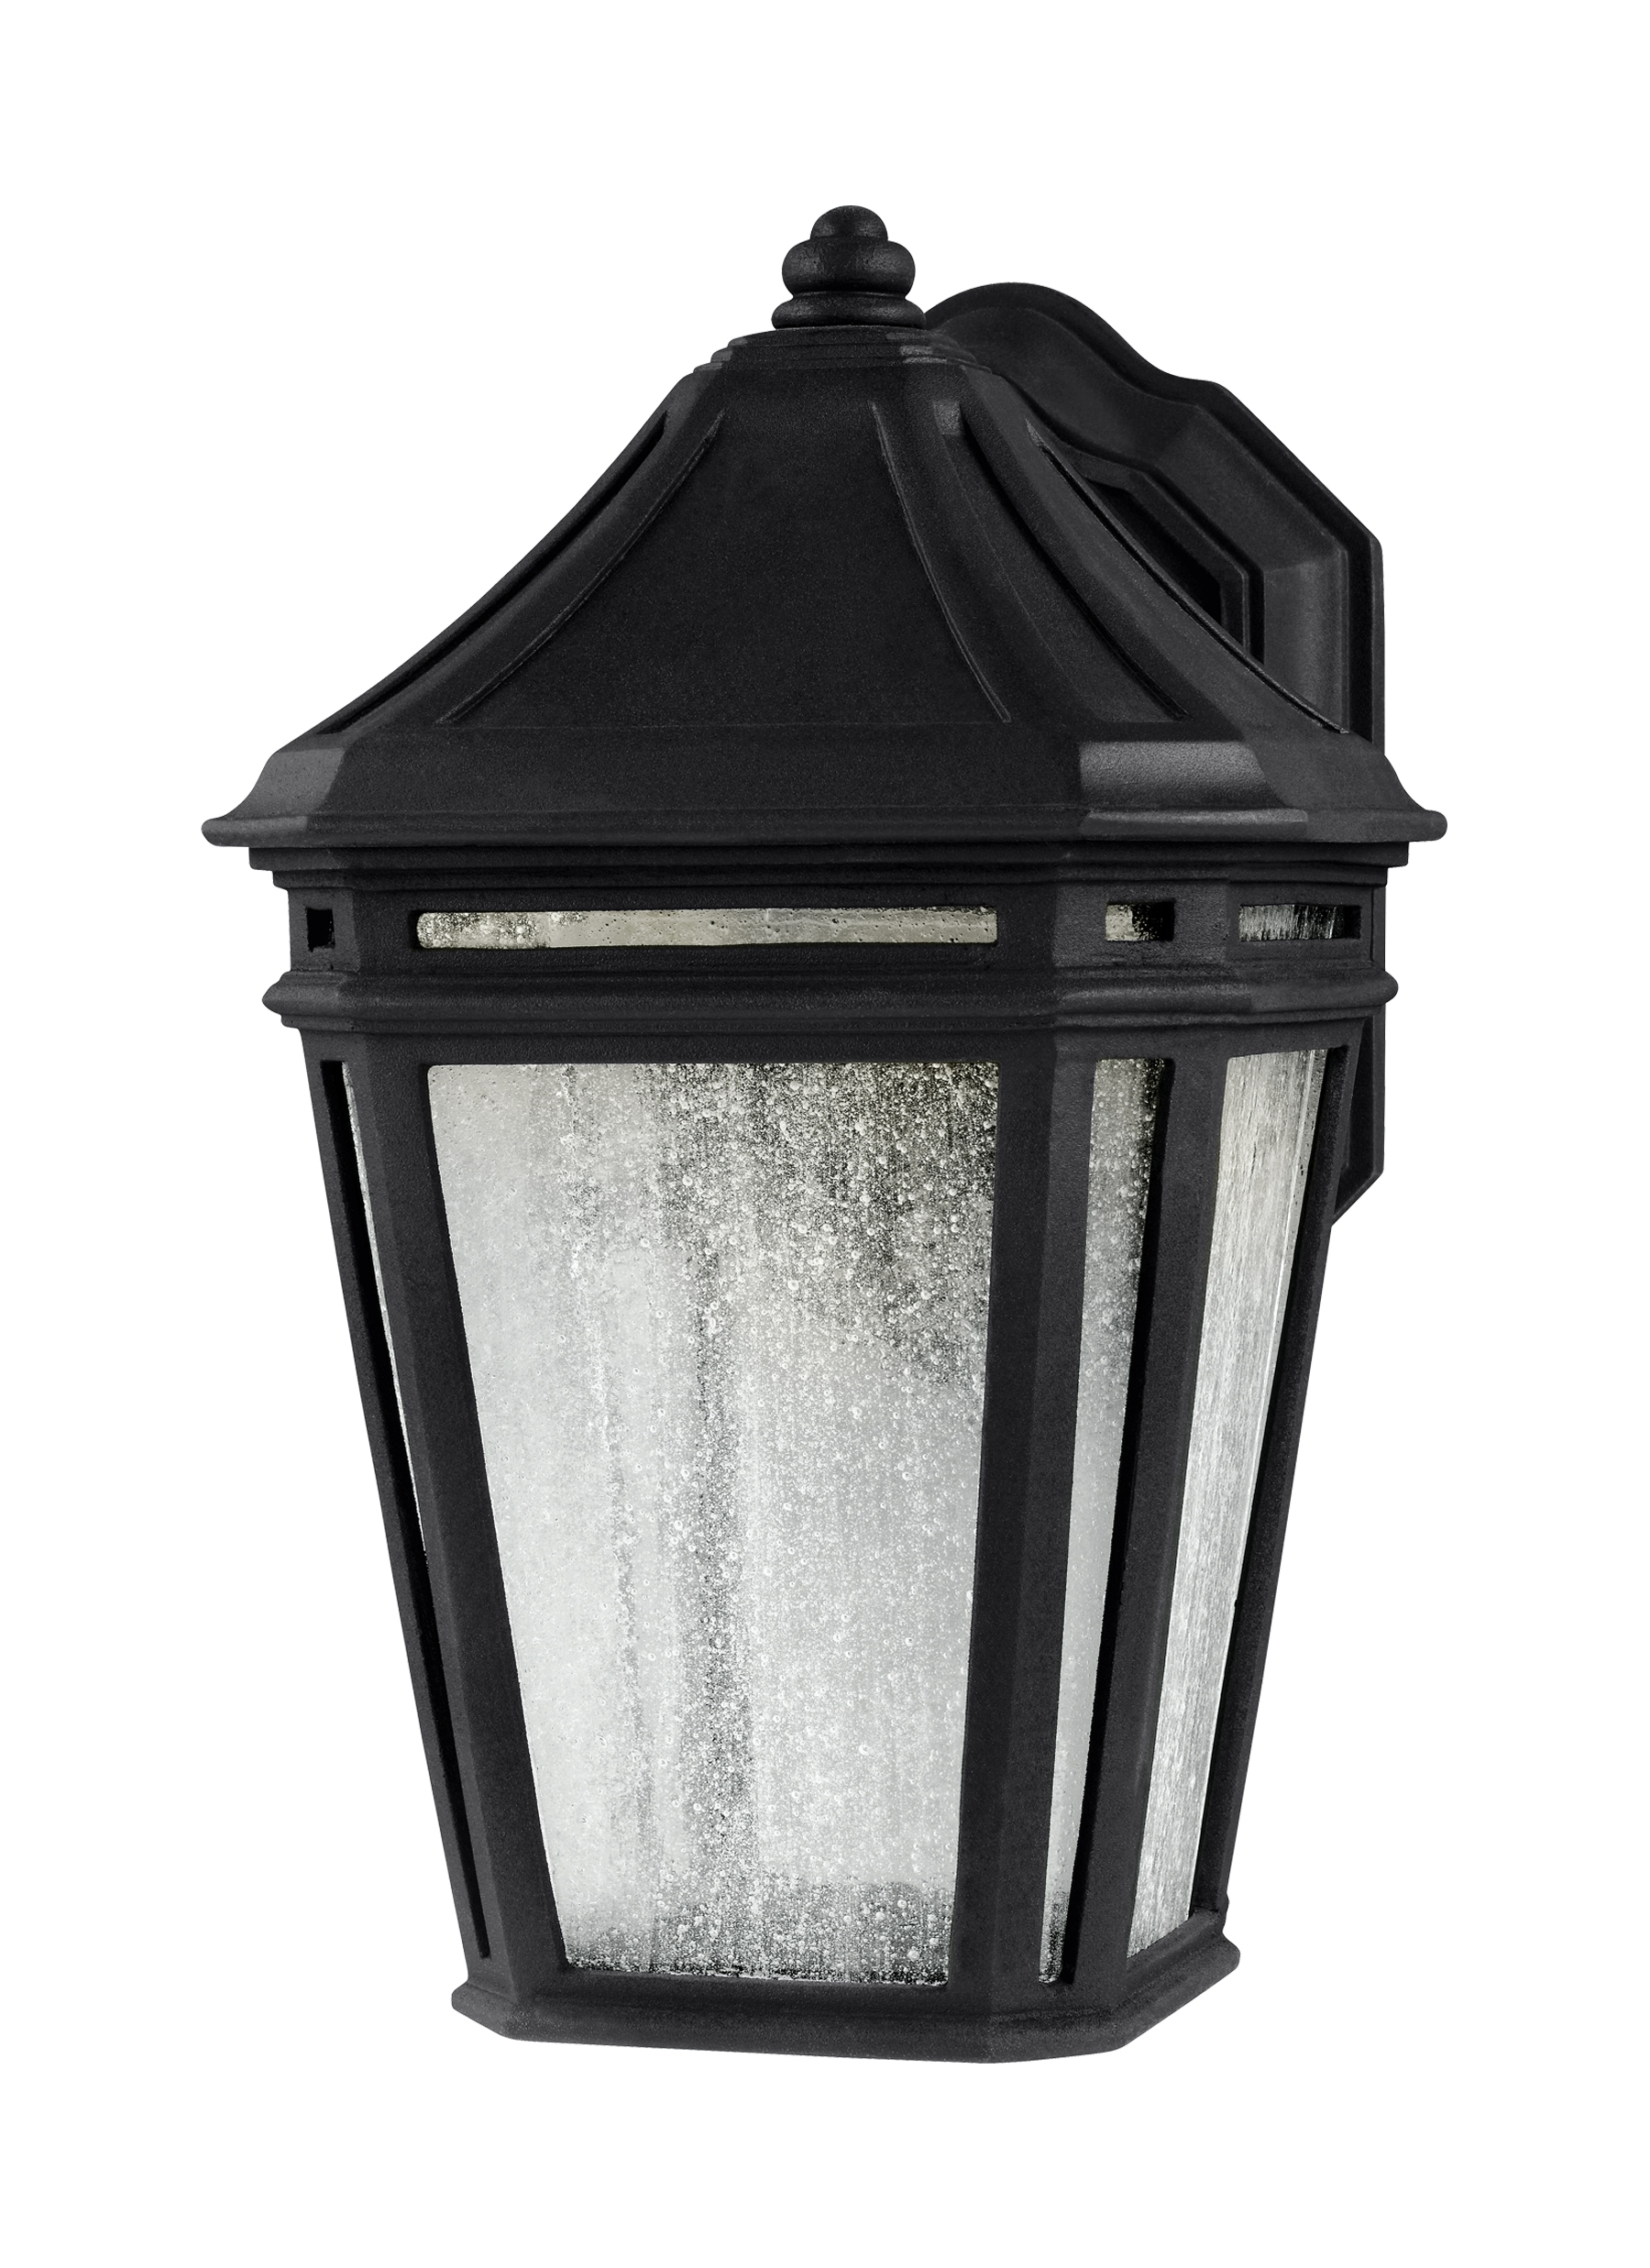 Led Outdoor Lanterns For Well Known Ol11302Bk Led,led Outdoor Sconce,black (View 3 of 20)